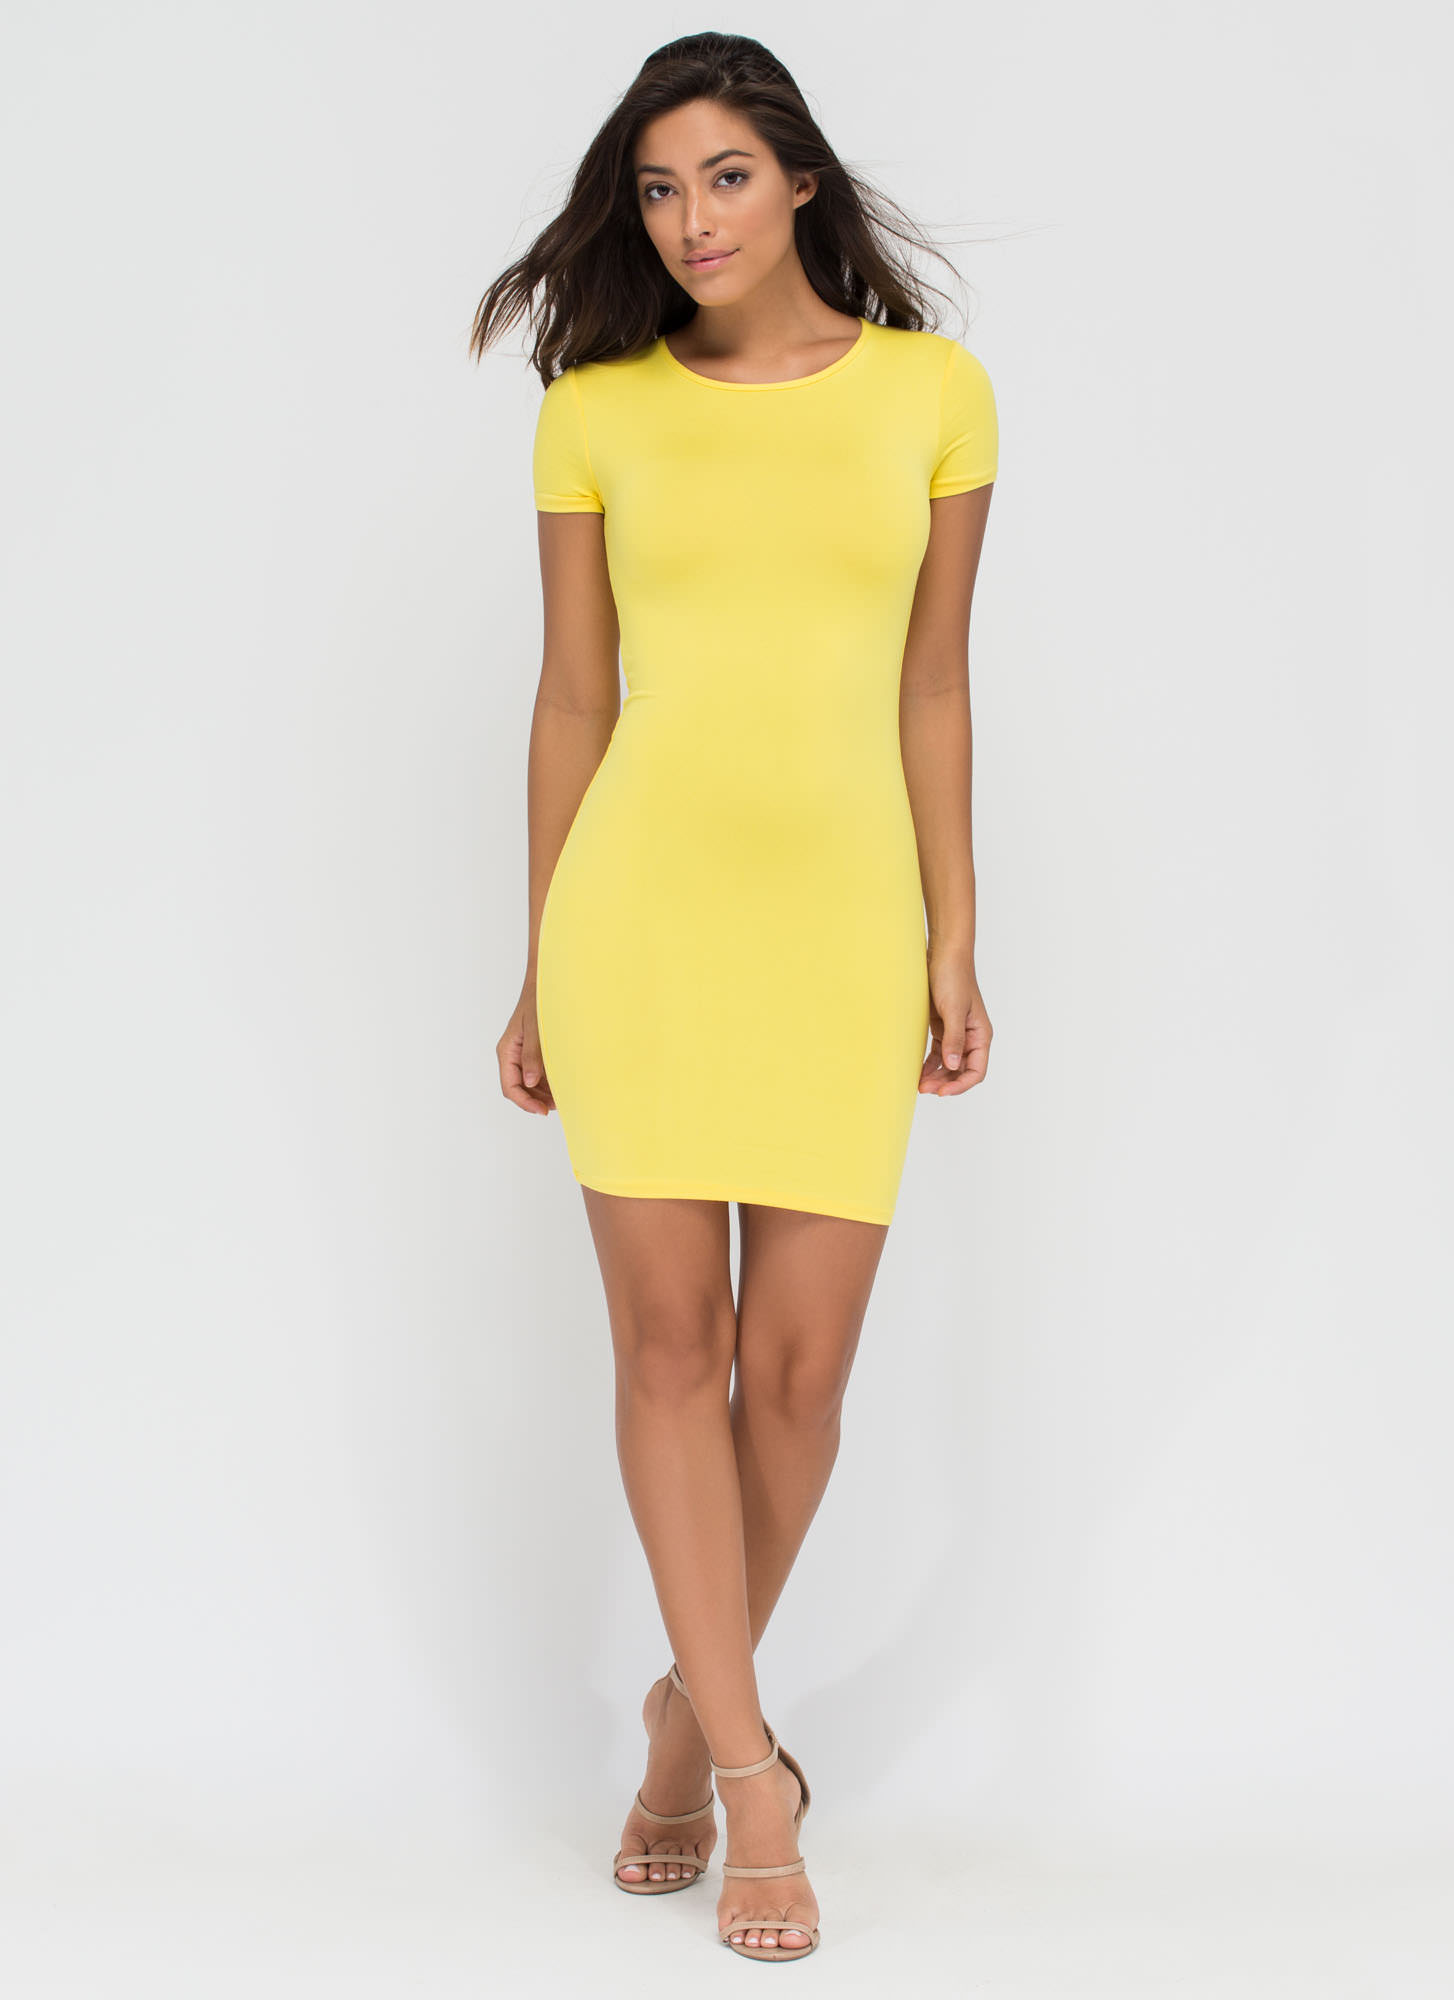 Doing Yourself A Solid T-Shirt Dress YELLOW